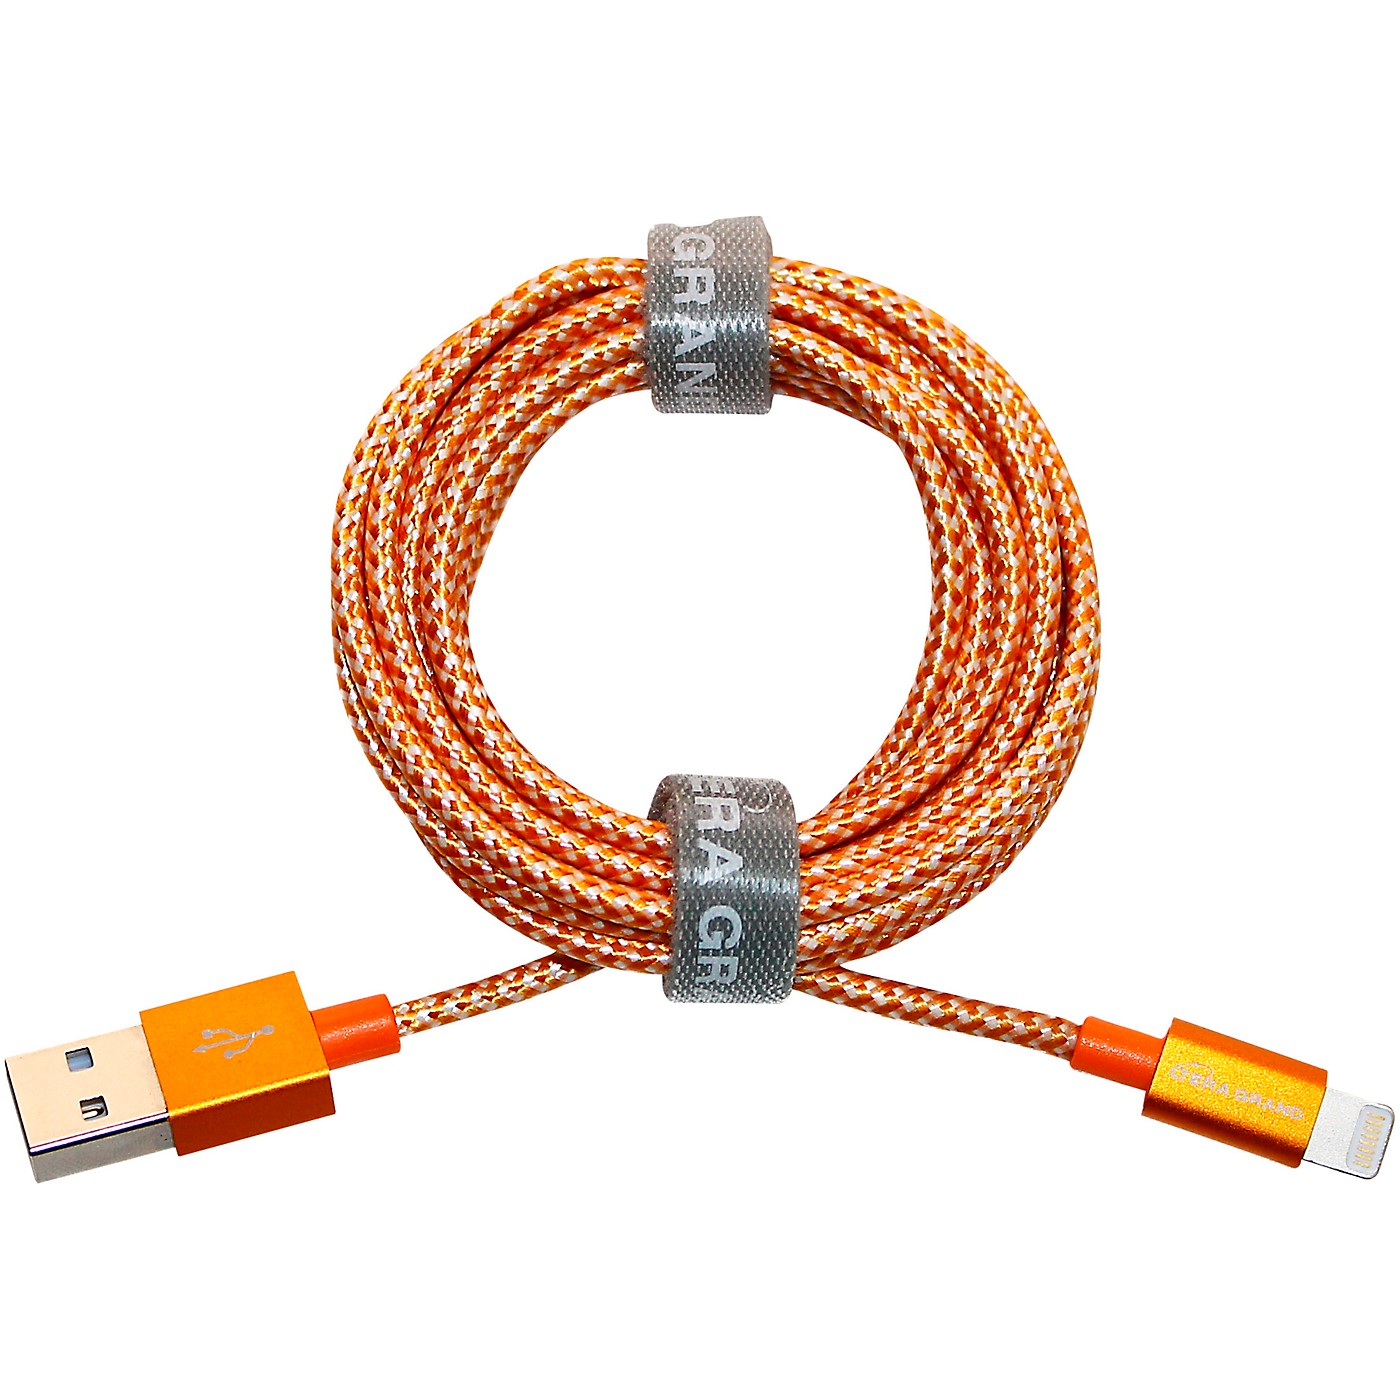 Tera Grand Apple MFi Certified - Lightning to USB Braided Cable with Aluminum Housing, 7 Feet Orange/White thumbnail